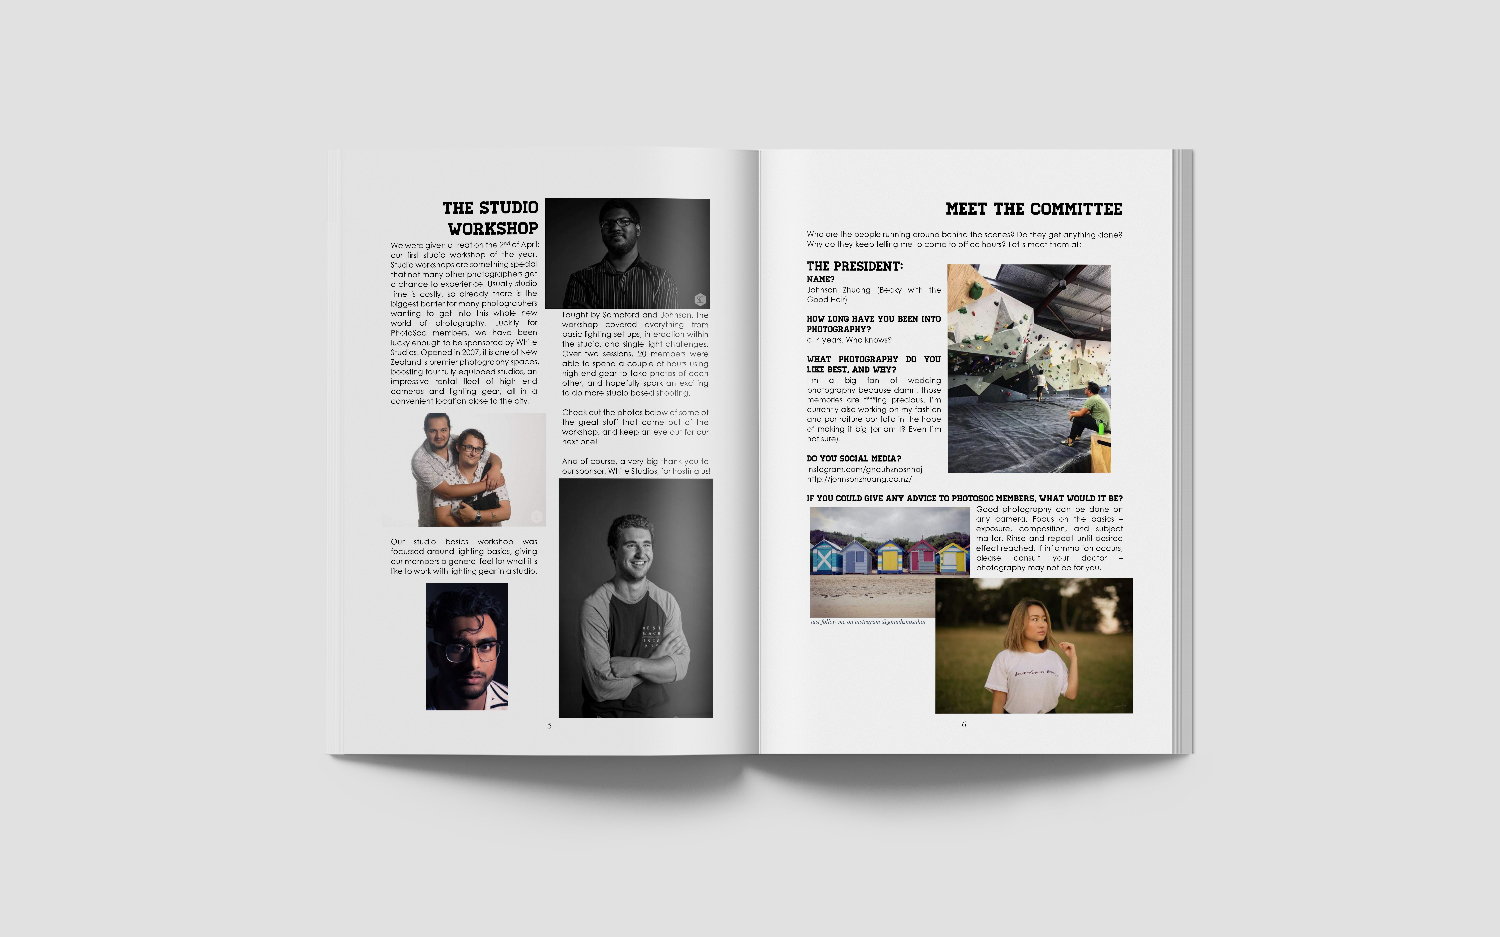 Issue 1 - April 2017WelcomeWorking as a Professional PhotographerThe Studio WorkshopMeet The Committee